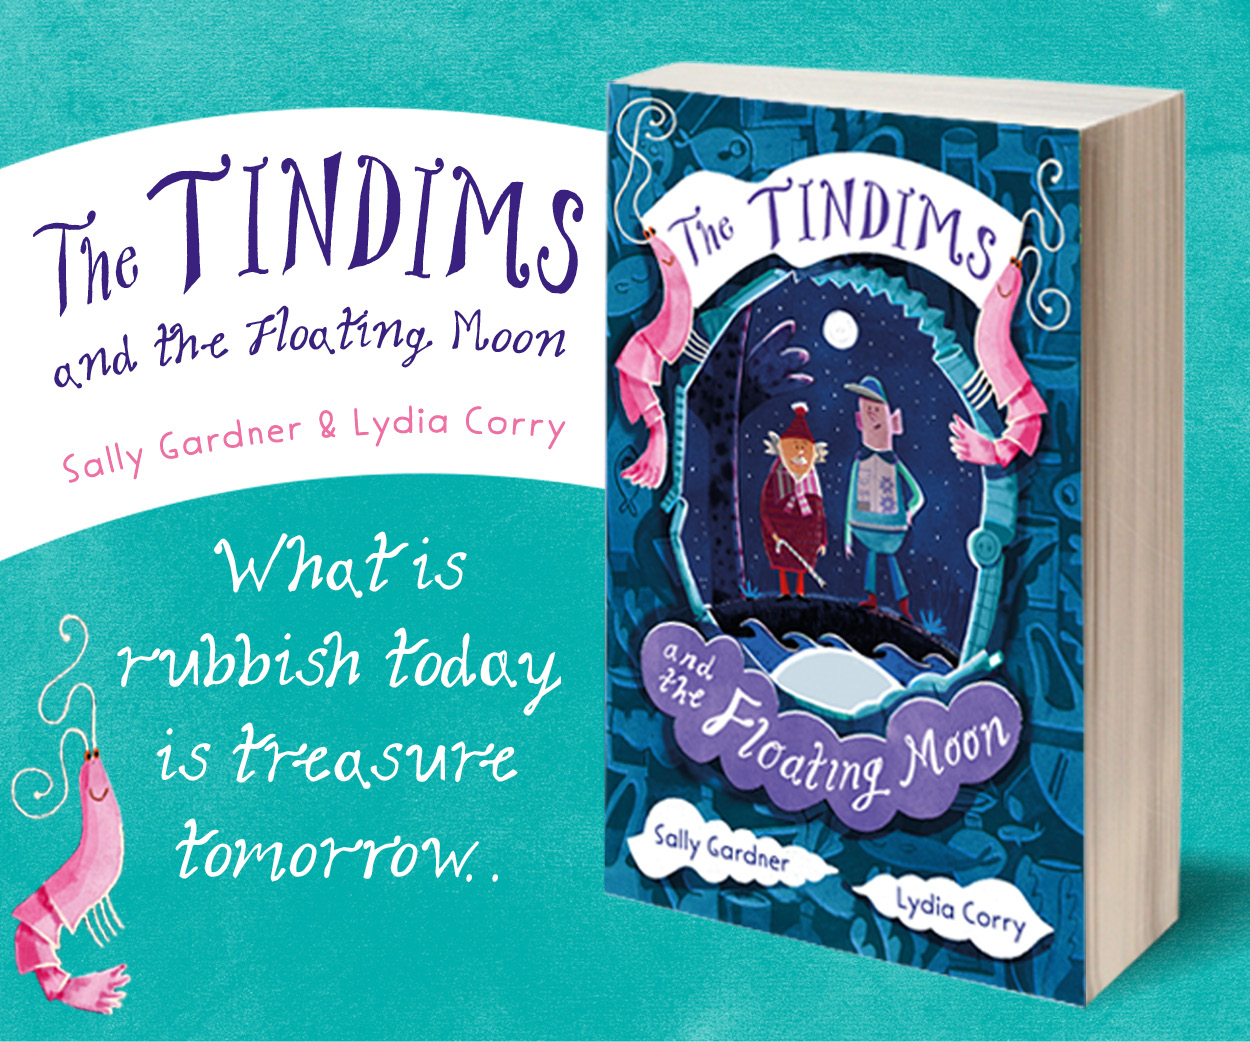 the Tindims and the Floating moon MPU